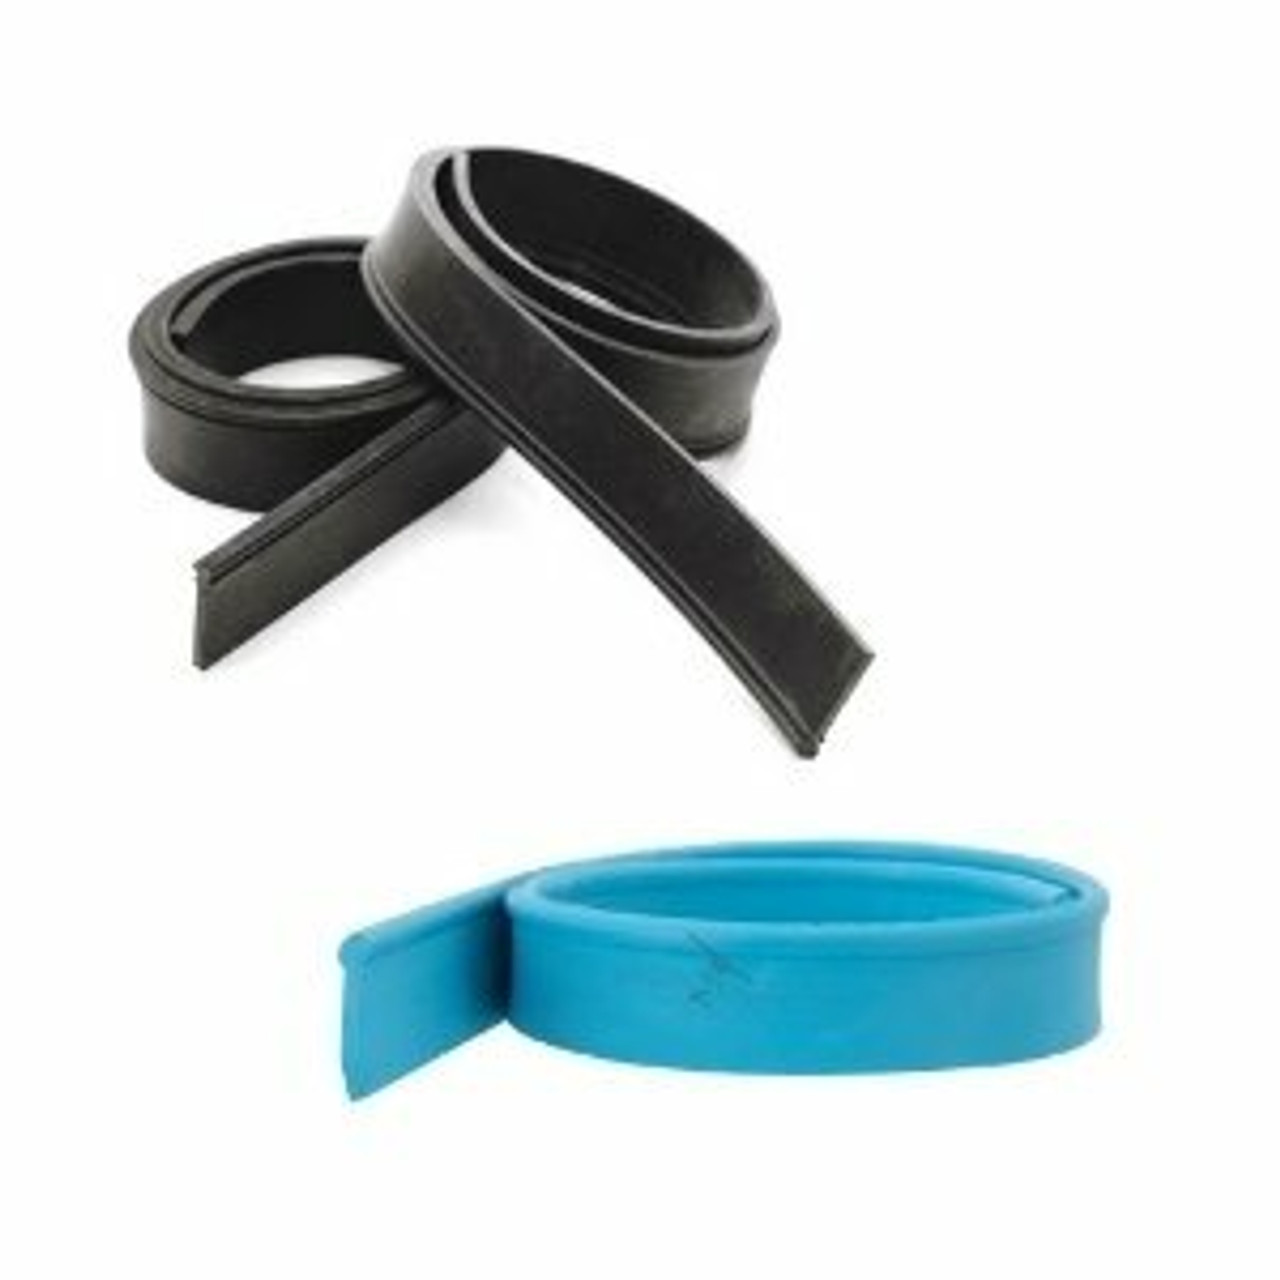 Rubber Replacements